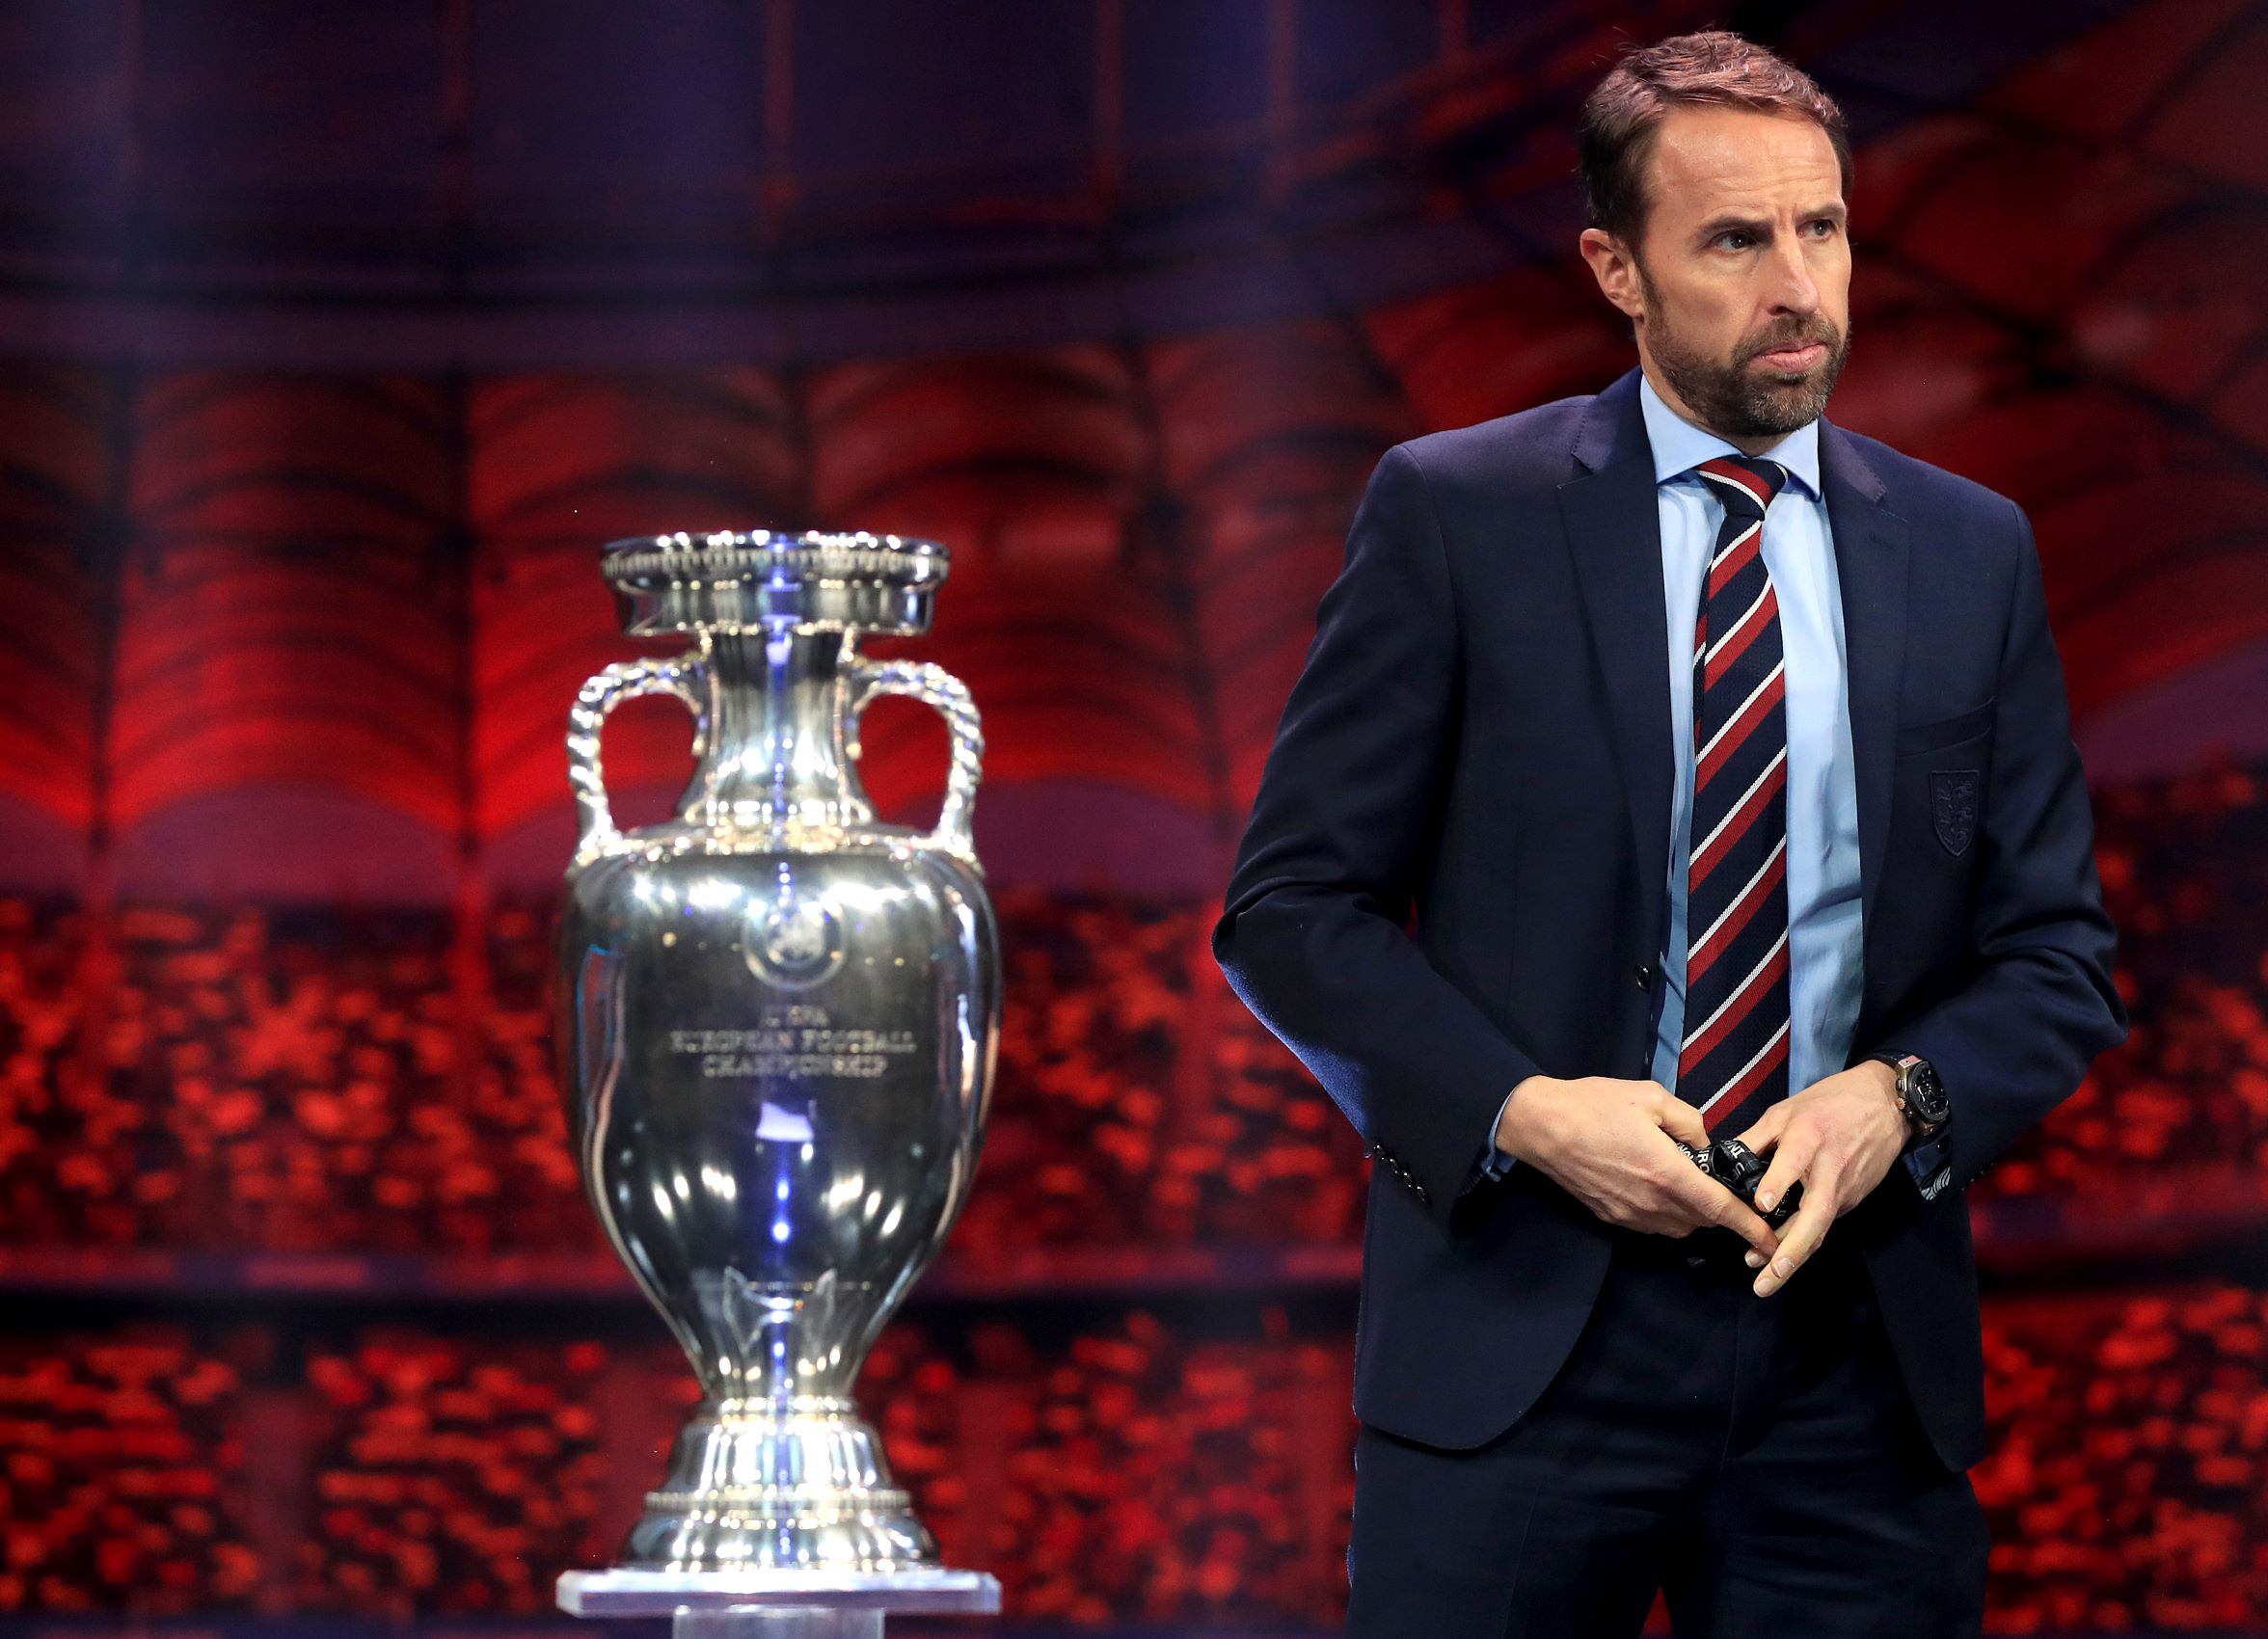 20 Of The Best Bets For 2020 Across A Range Of Sports